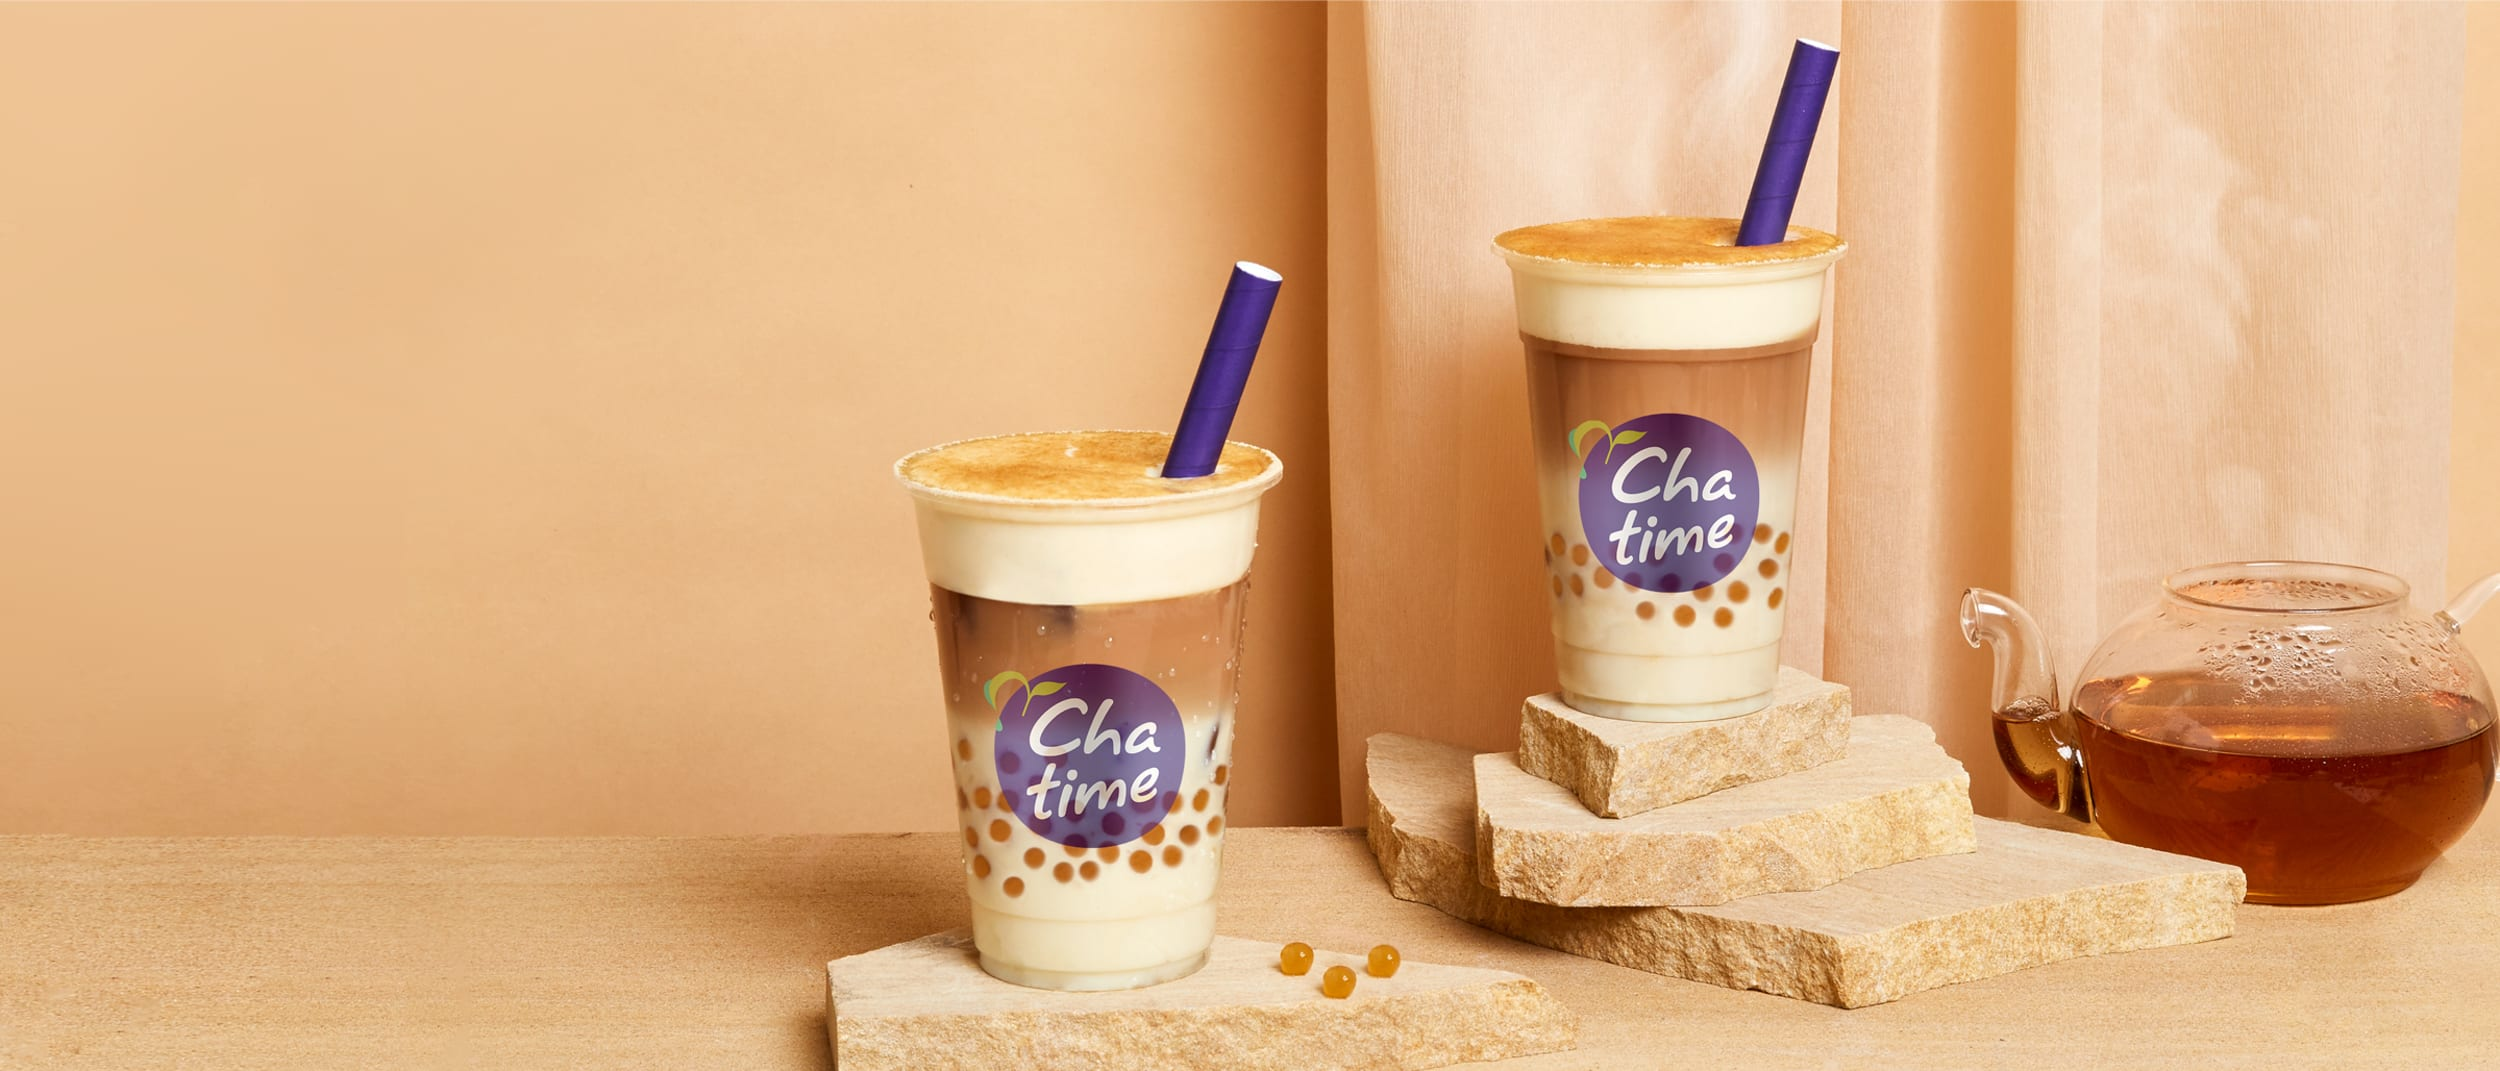 Chatime: You've Bean Looking Soy Fancy